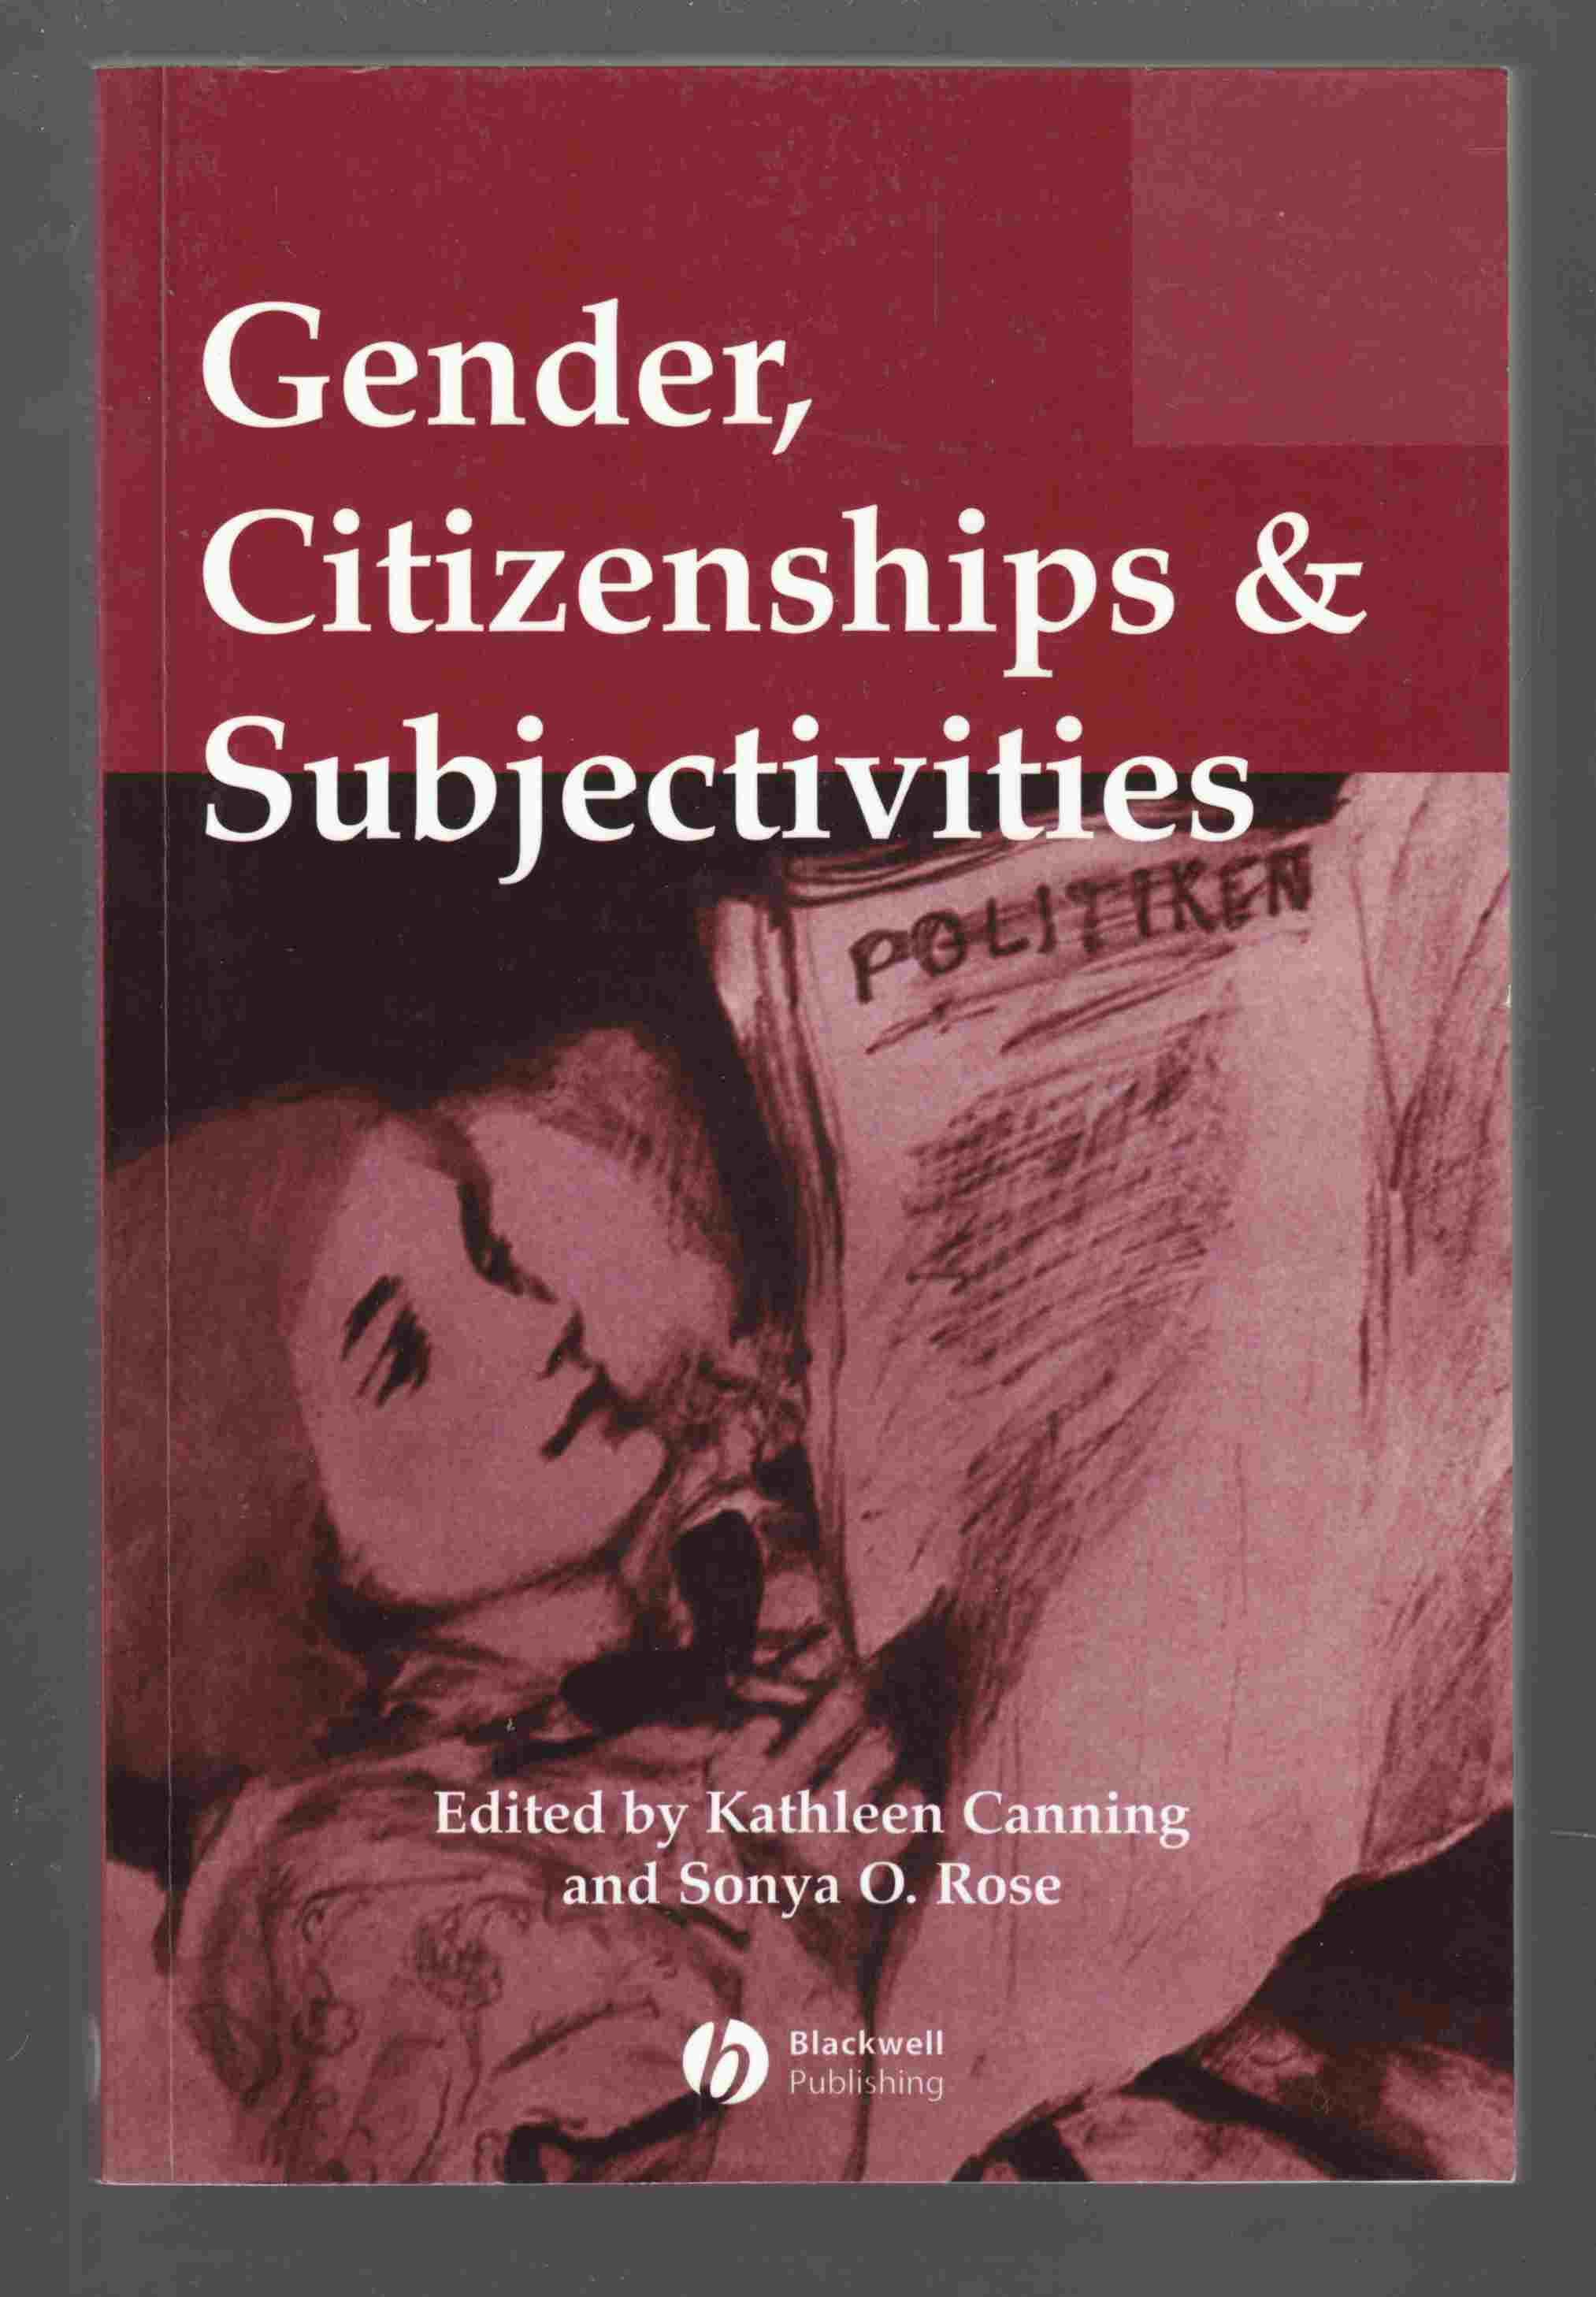 Image for Gender, Citizenships & Subjectivities